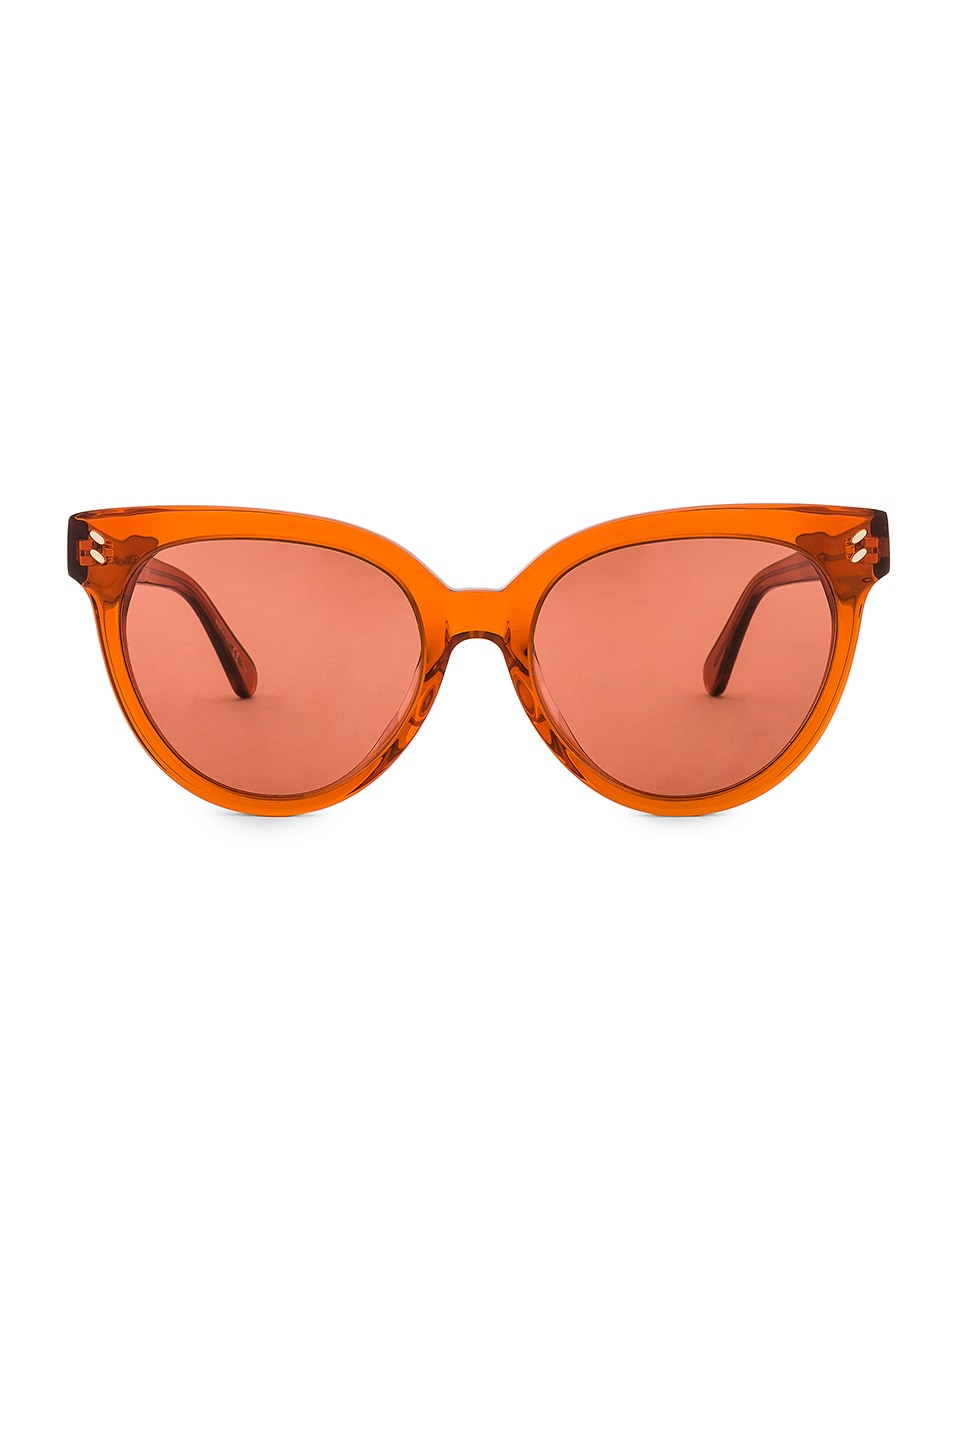 Stella McCartney GAFAS DE SOL ROUND CAT EYE ACETATE